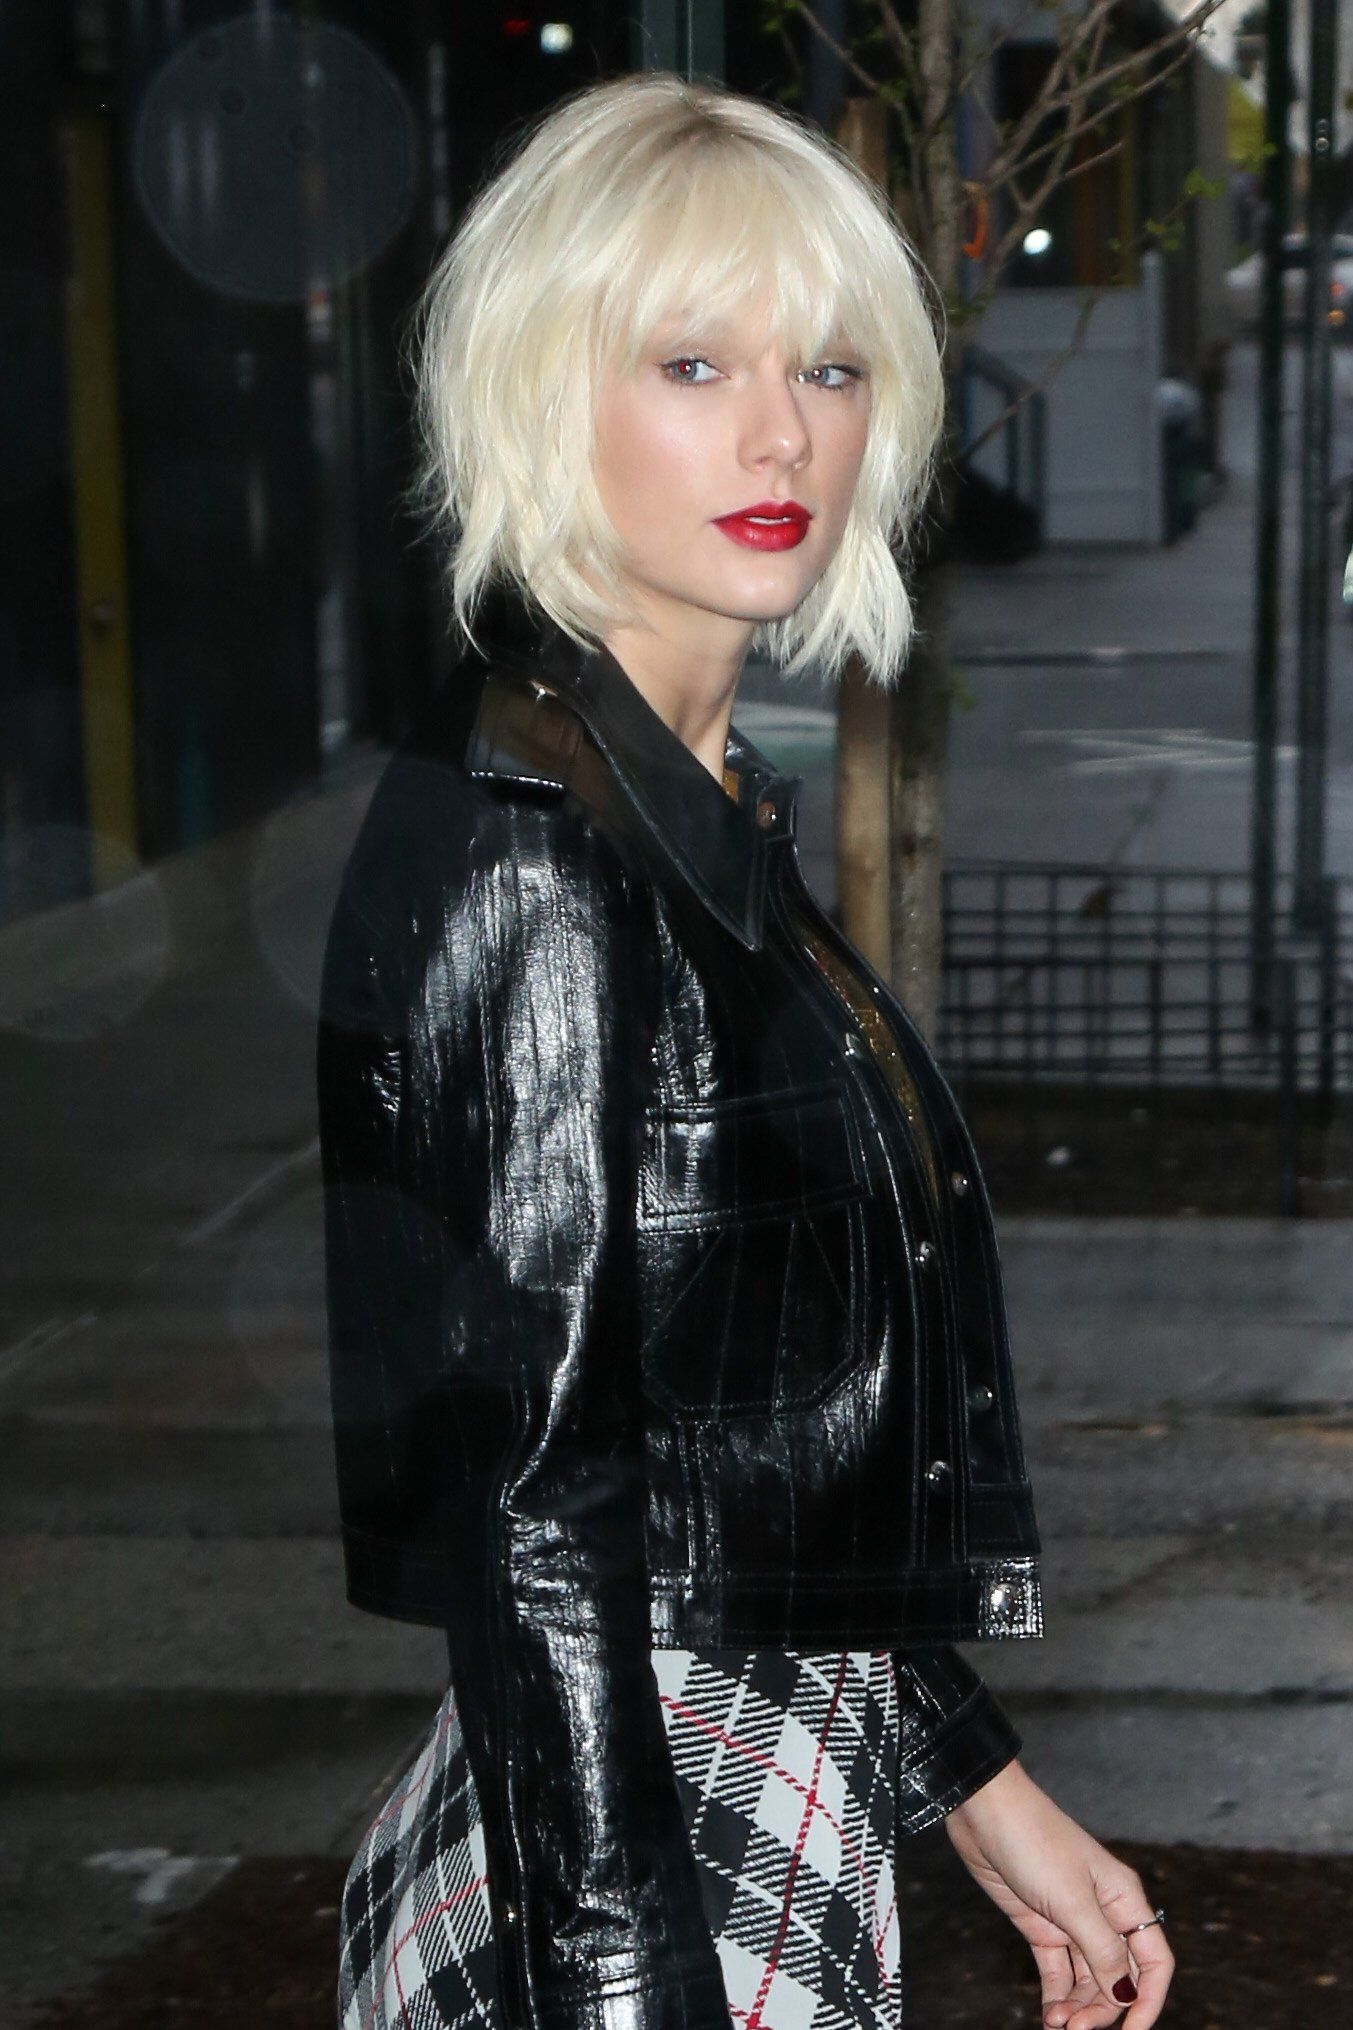 Taylor Swift Puts A New Grunge Twist On Her Signature Beauty Look Taylor Swift Hair Taylor Swift Hair Color Hairstyle